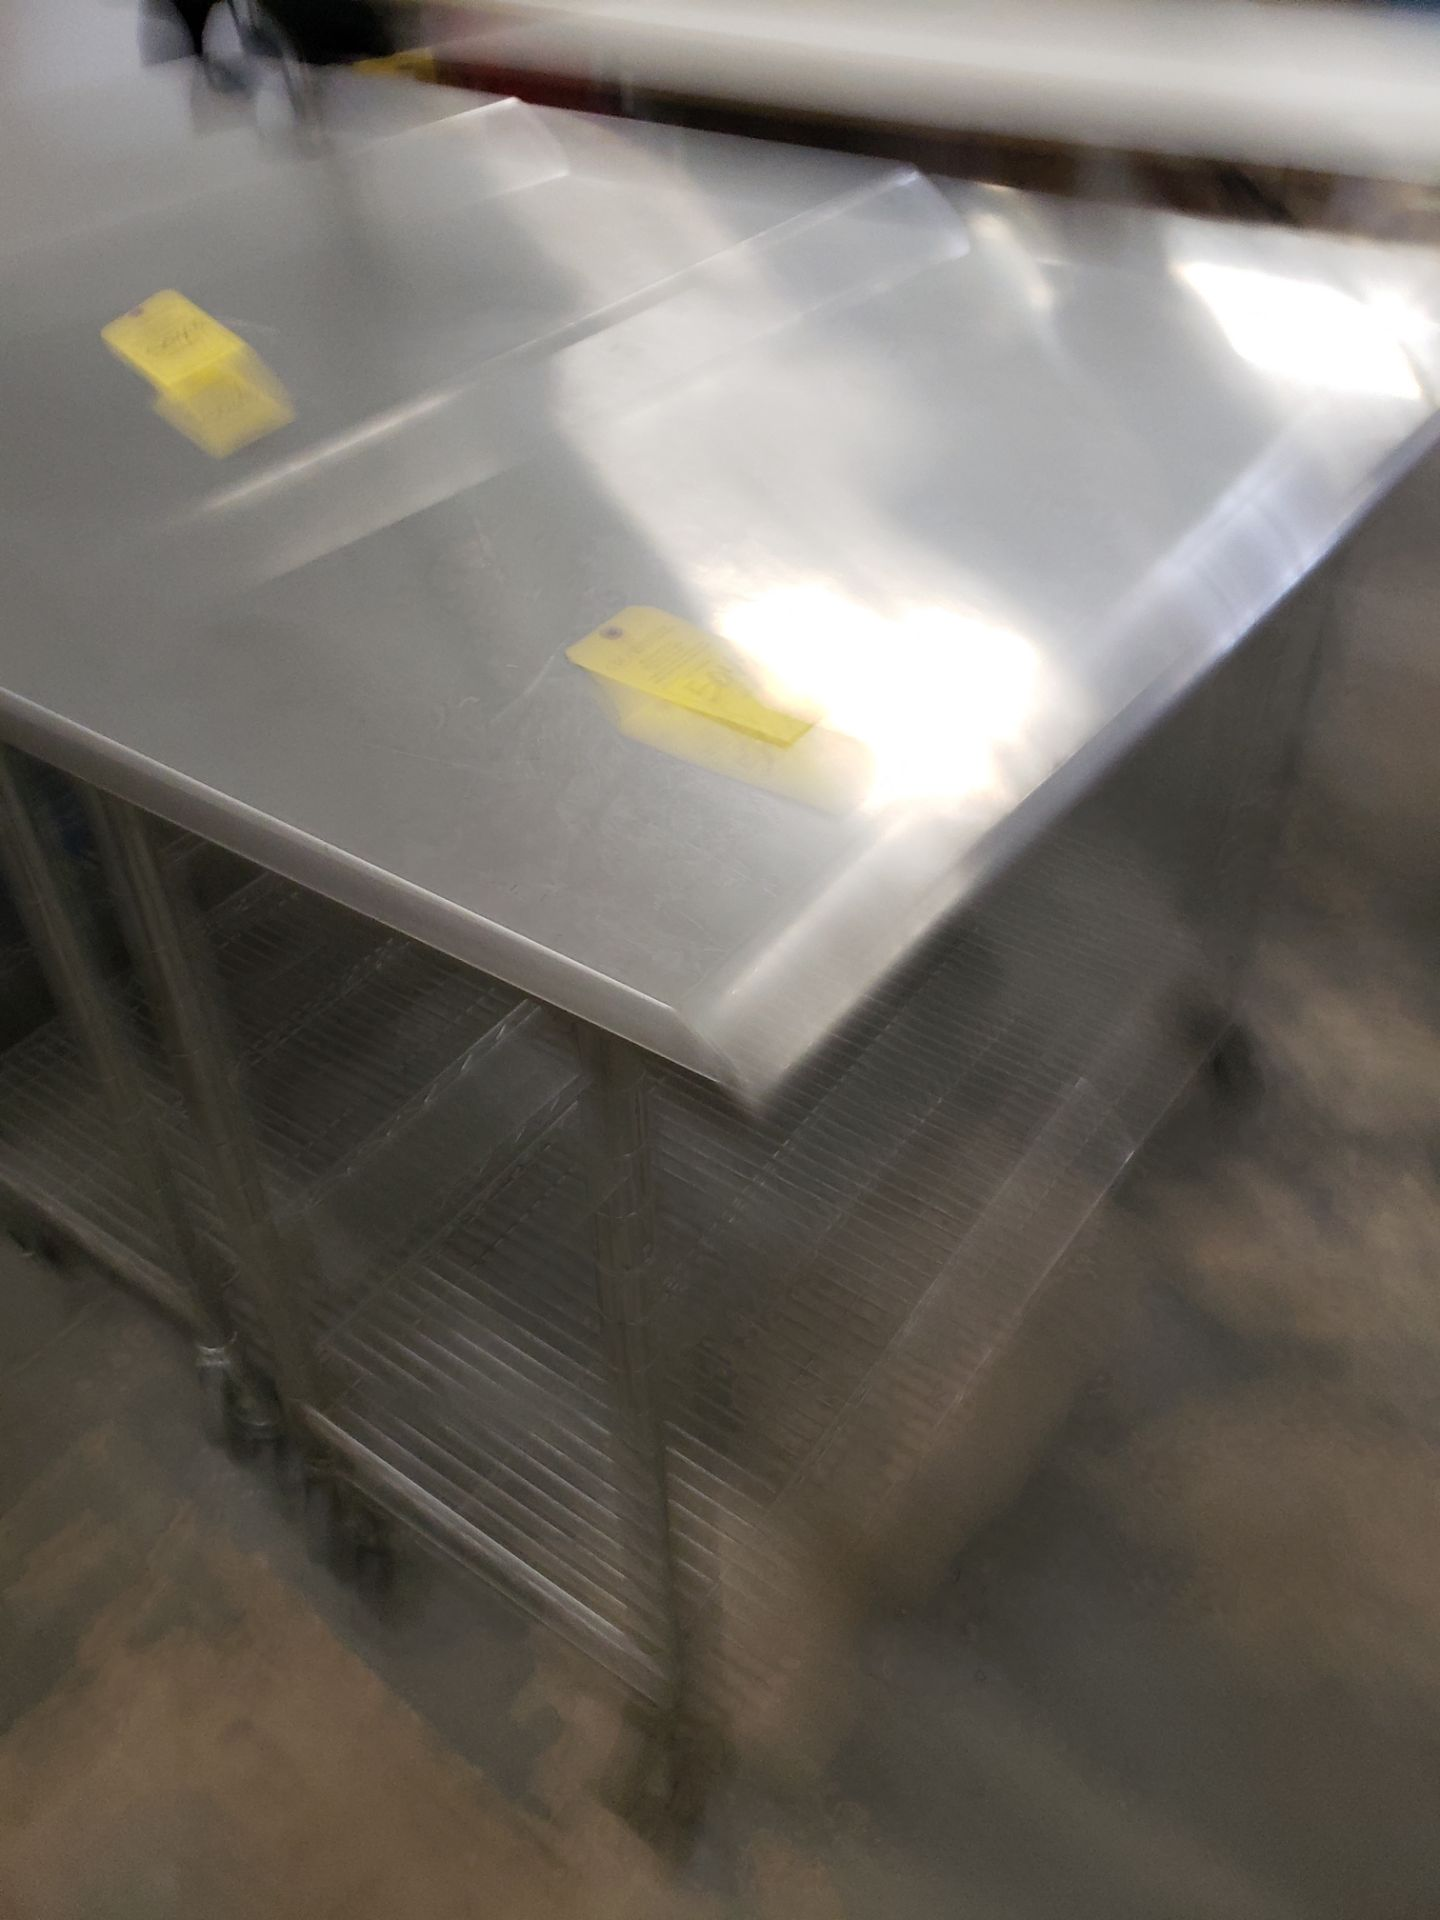 Lot 5049 - STAINLESS STEEL ROLLING TABLE (LOCATED AT: 16335 LIMA ROAD BLDG. 4 HUNTERTOWN, IN 46748)